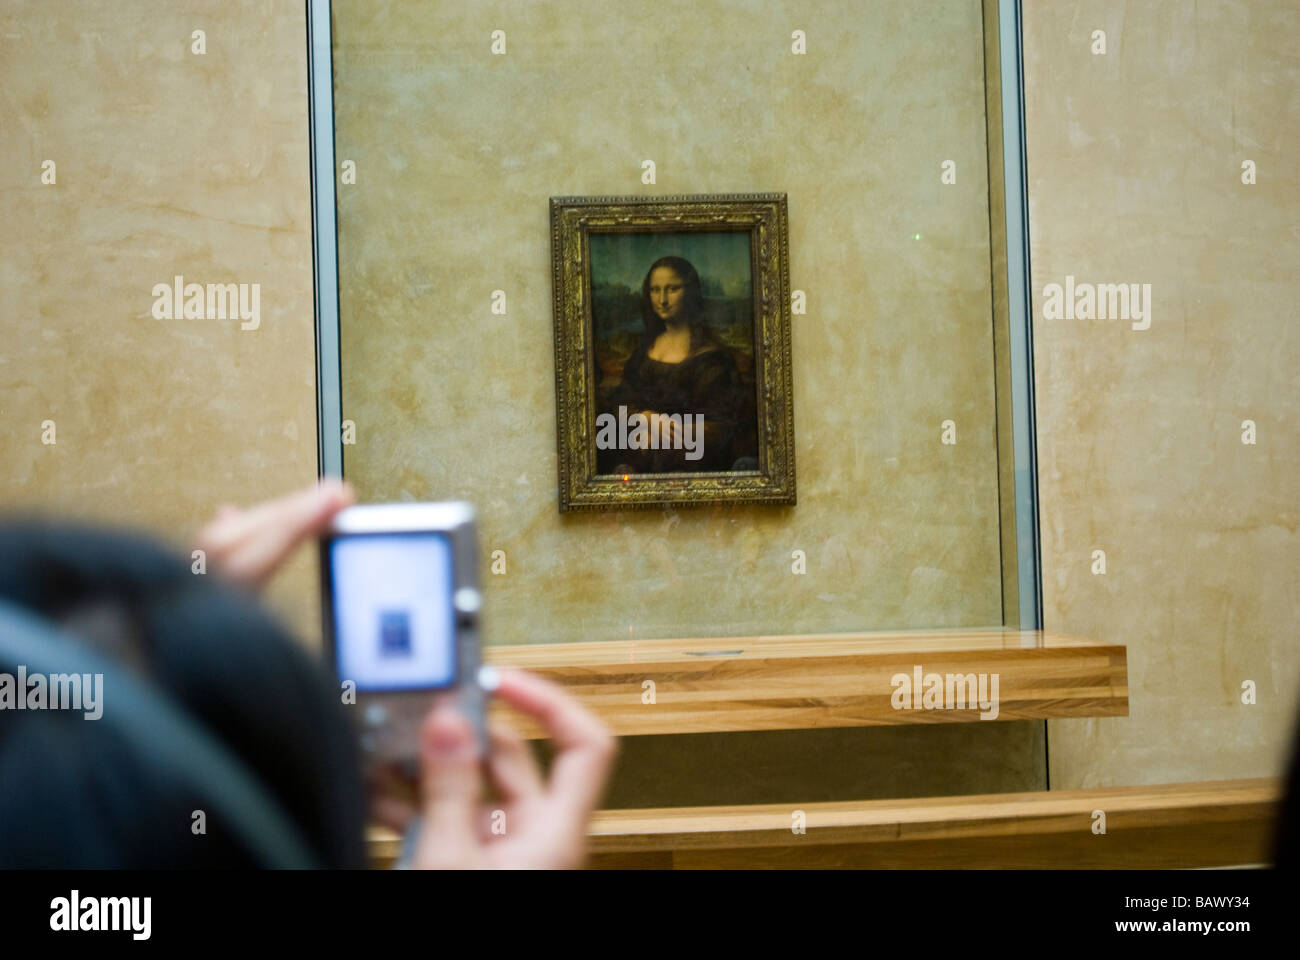 Woman Photographing Mona Lisa in Musee du Louvre - Stock Image